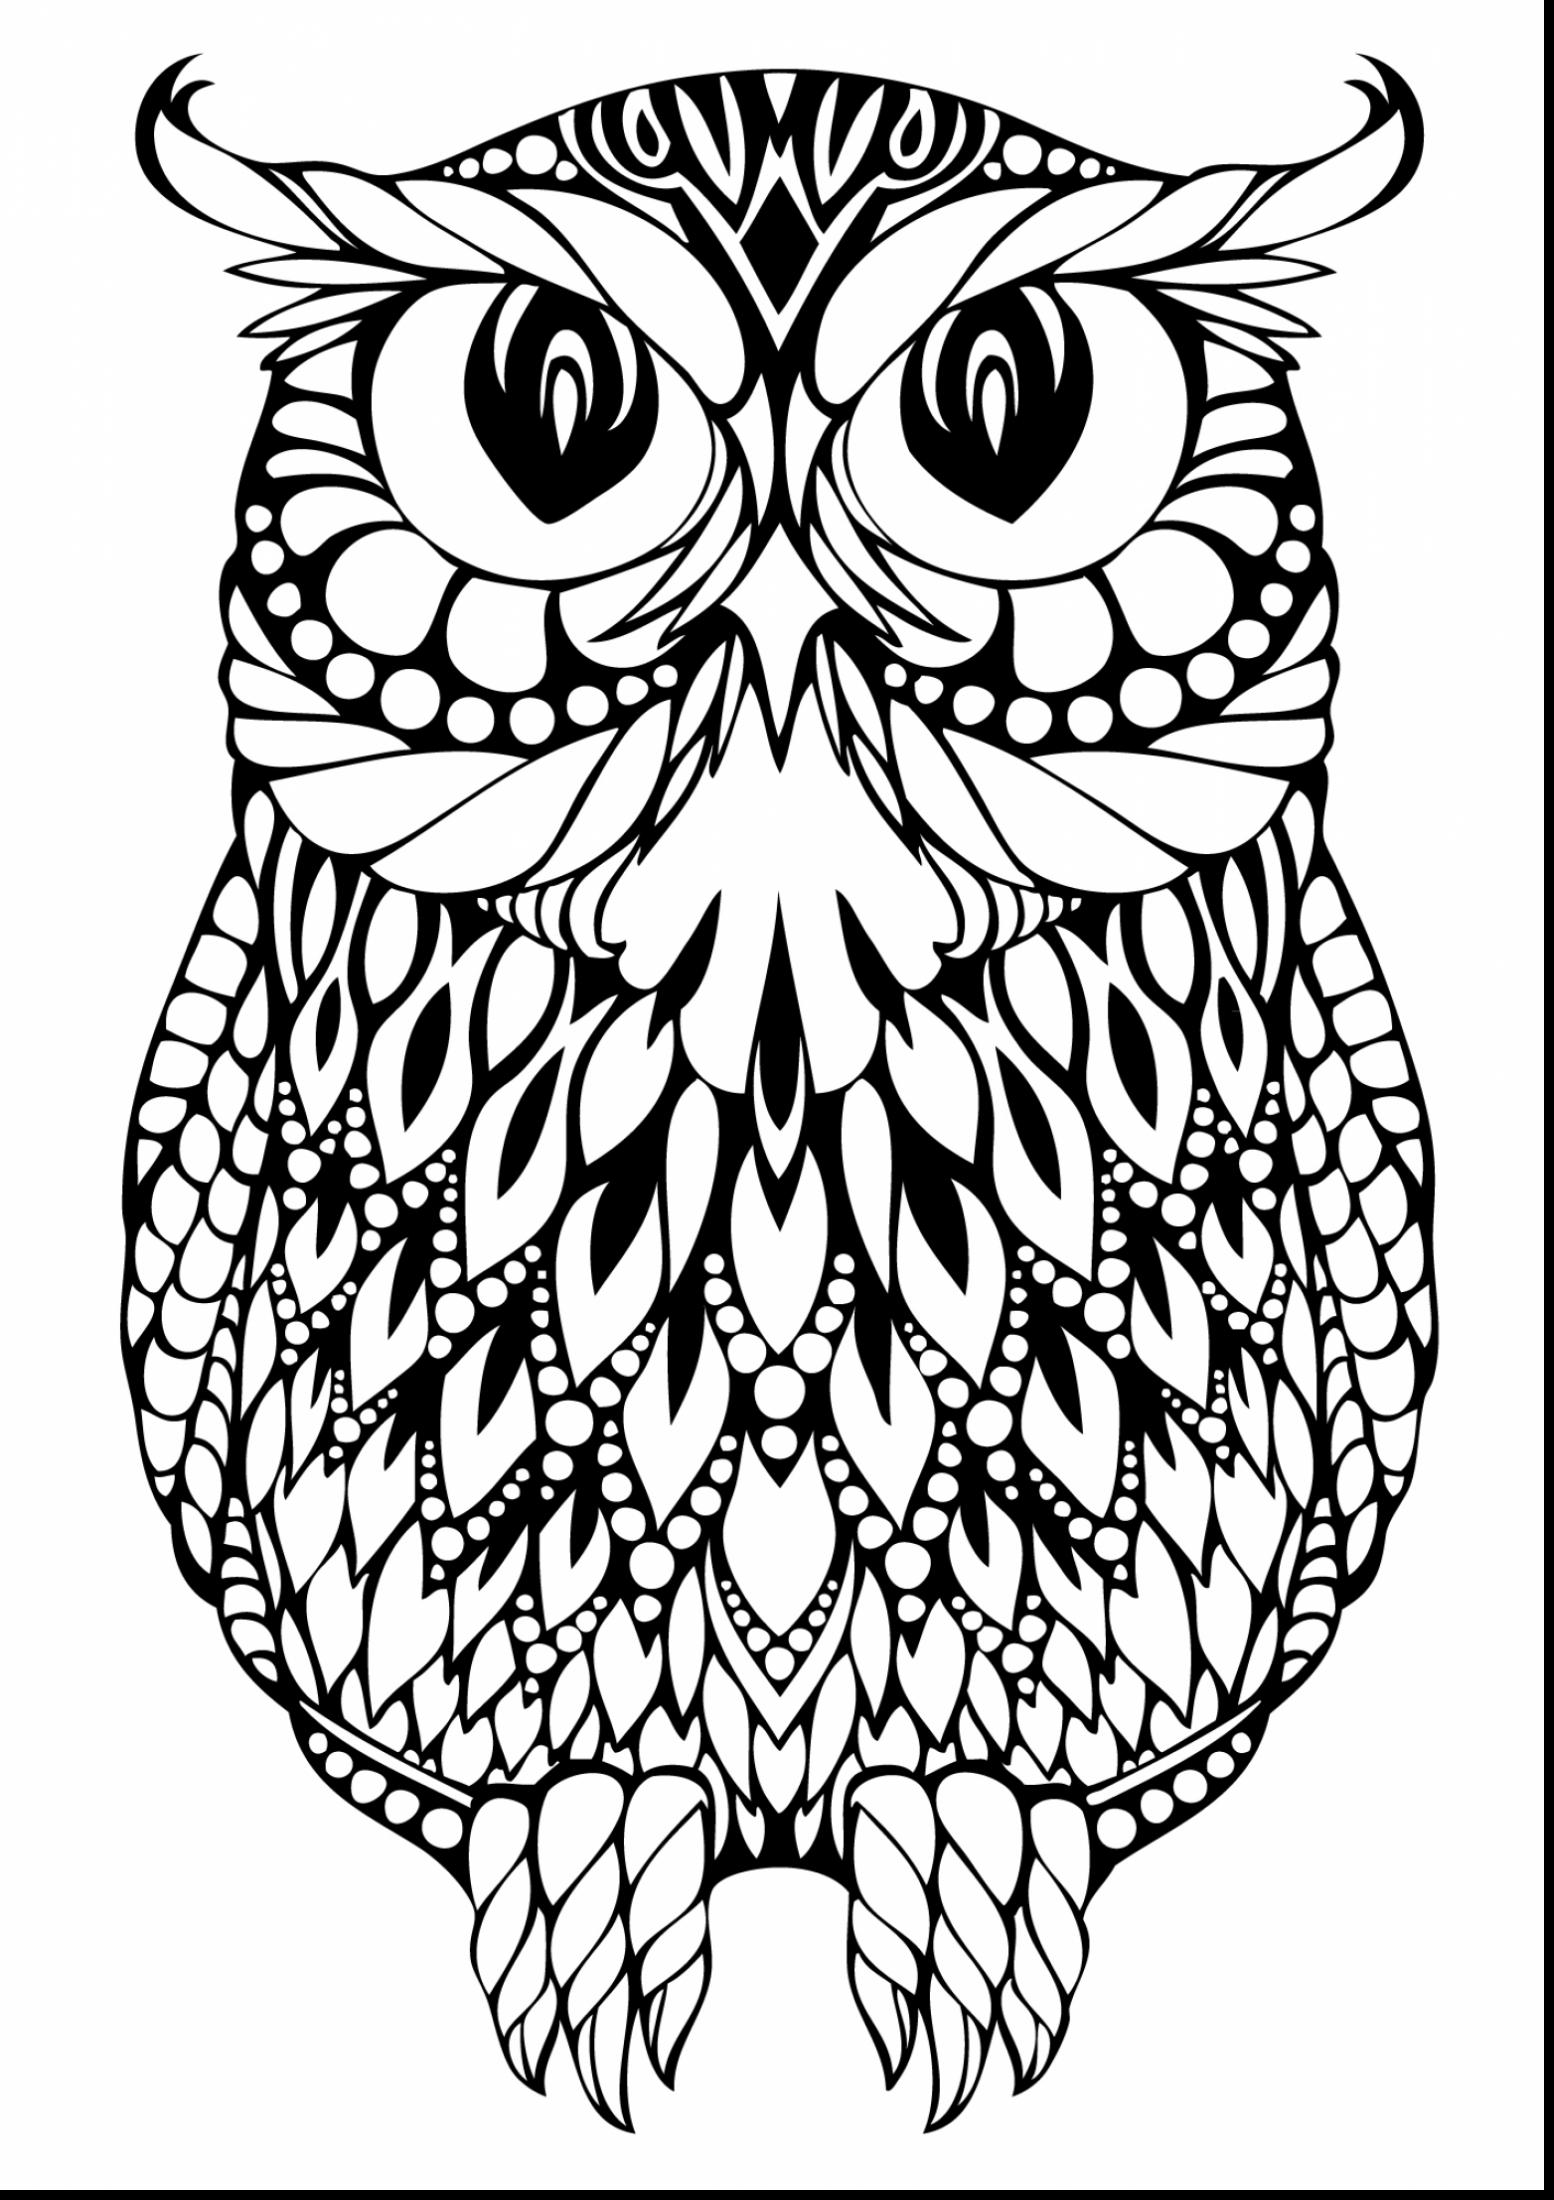 colouring owl owl drawing cute at getdrawings free download colouring owl